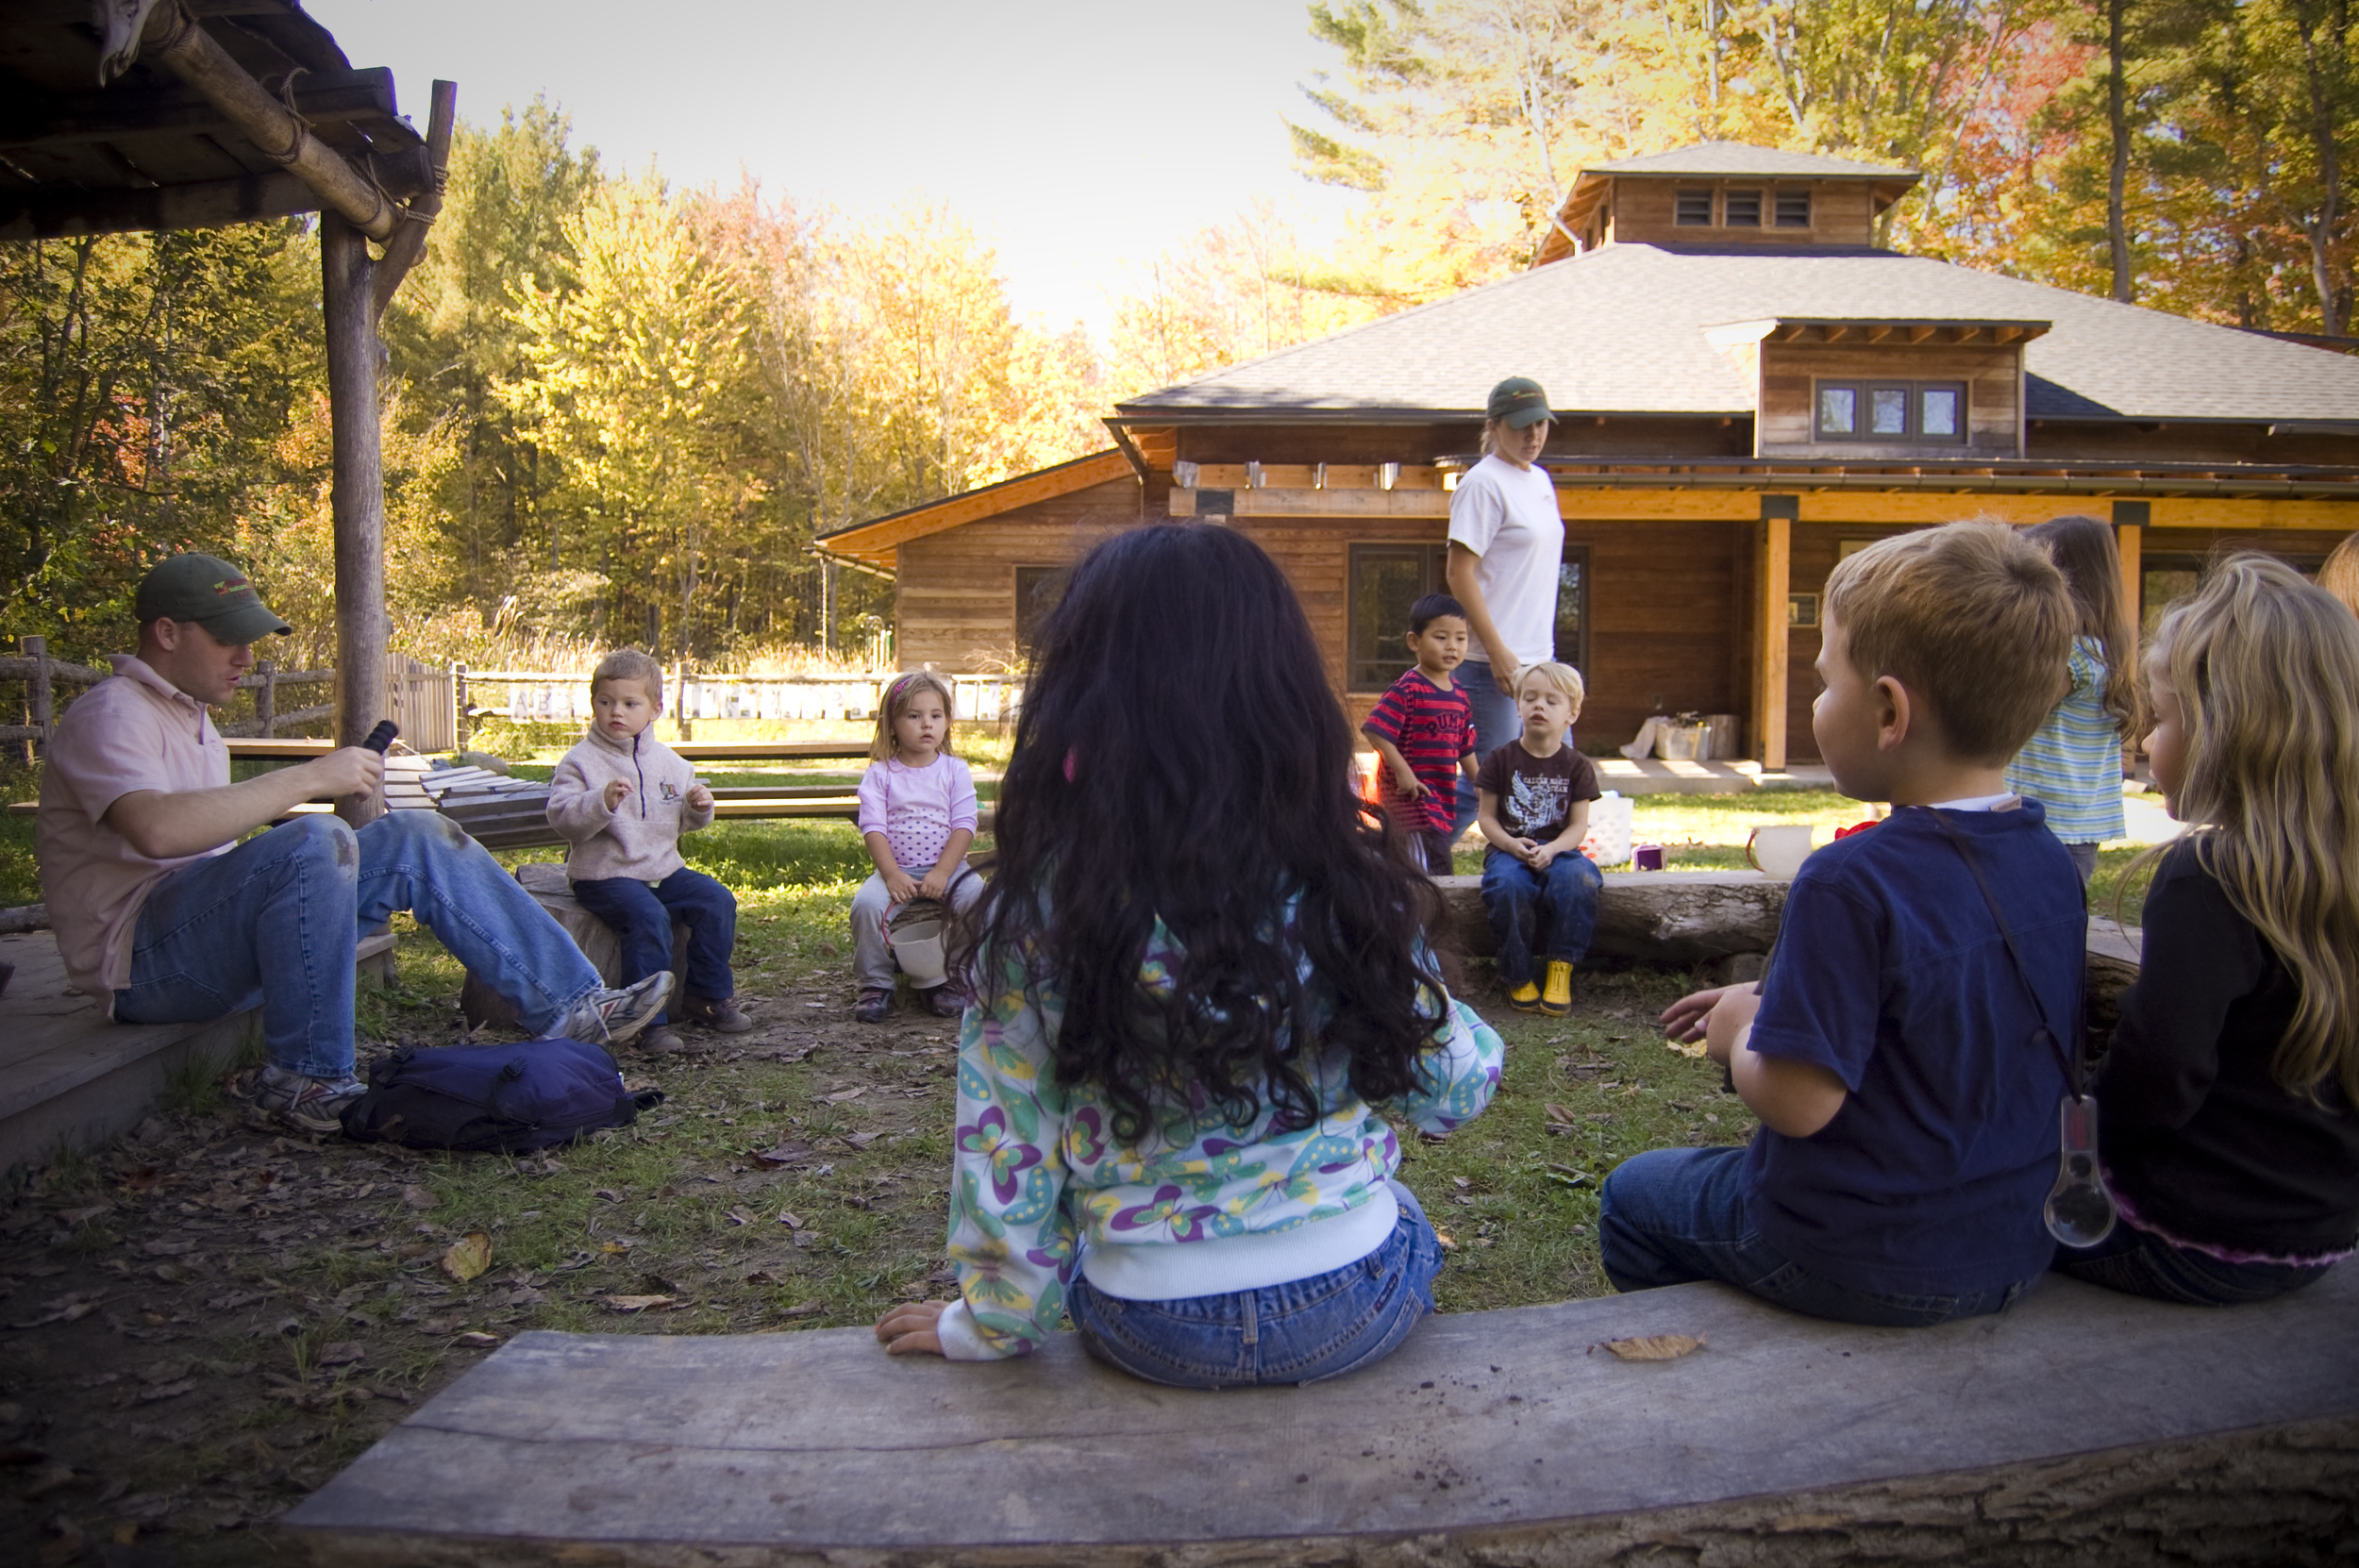 Nature Preschool at  Chippewa Nature Center  was opened in 2007; a program that at Rachel's departure served 140 three- and four-year-old children. The building shown here was built in 2009 to house the growing program.